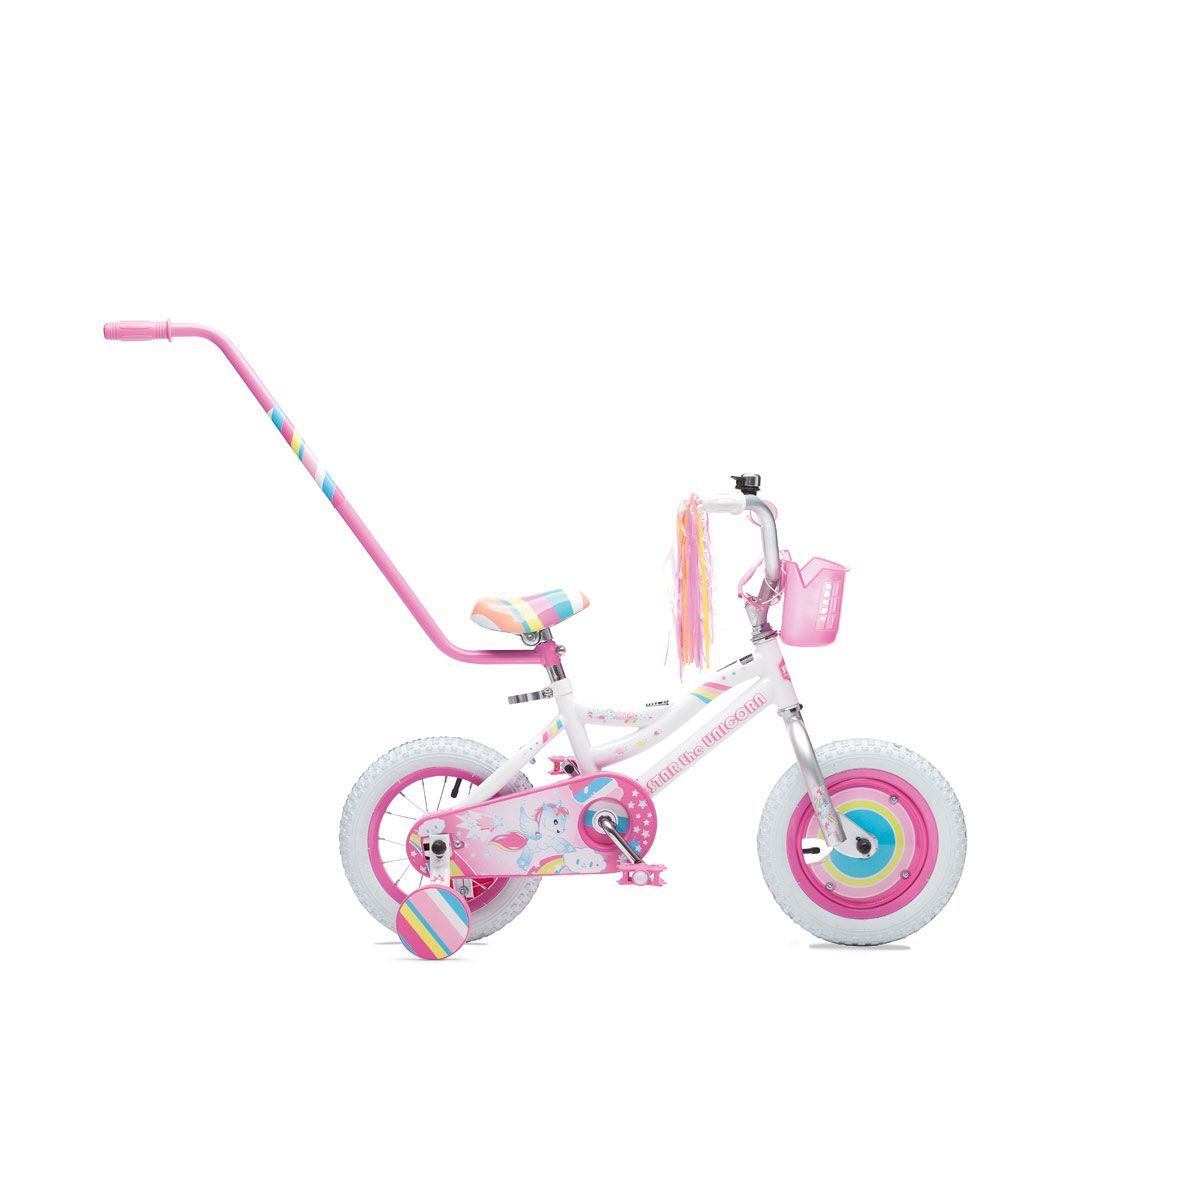 Star Of The Unicorn Bike Kmart Unicorn Bike Kids Bike Bike